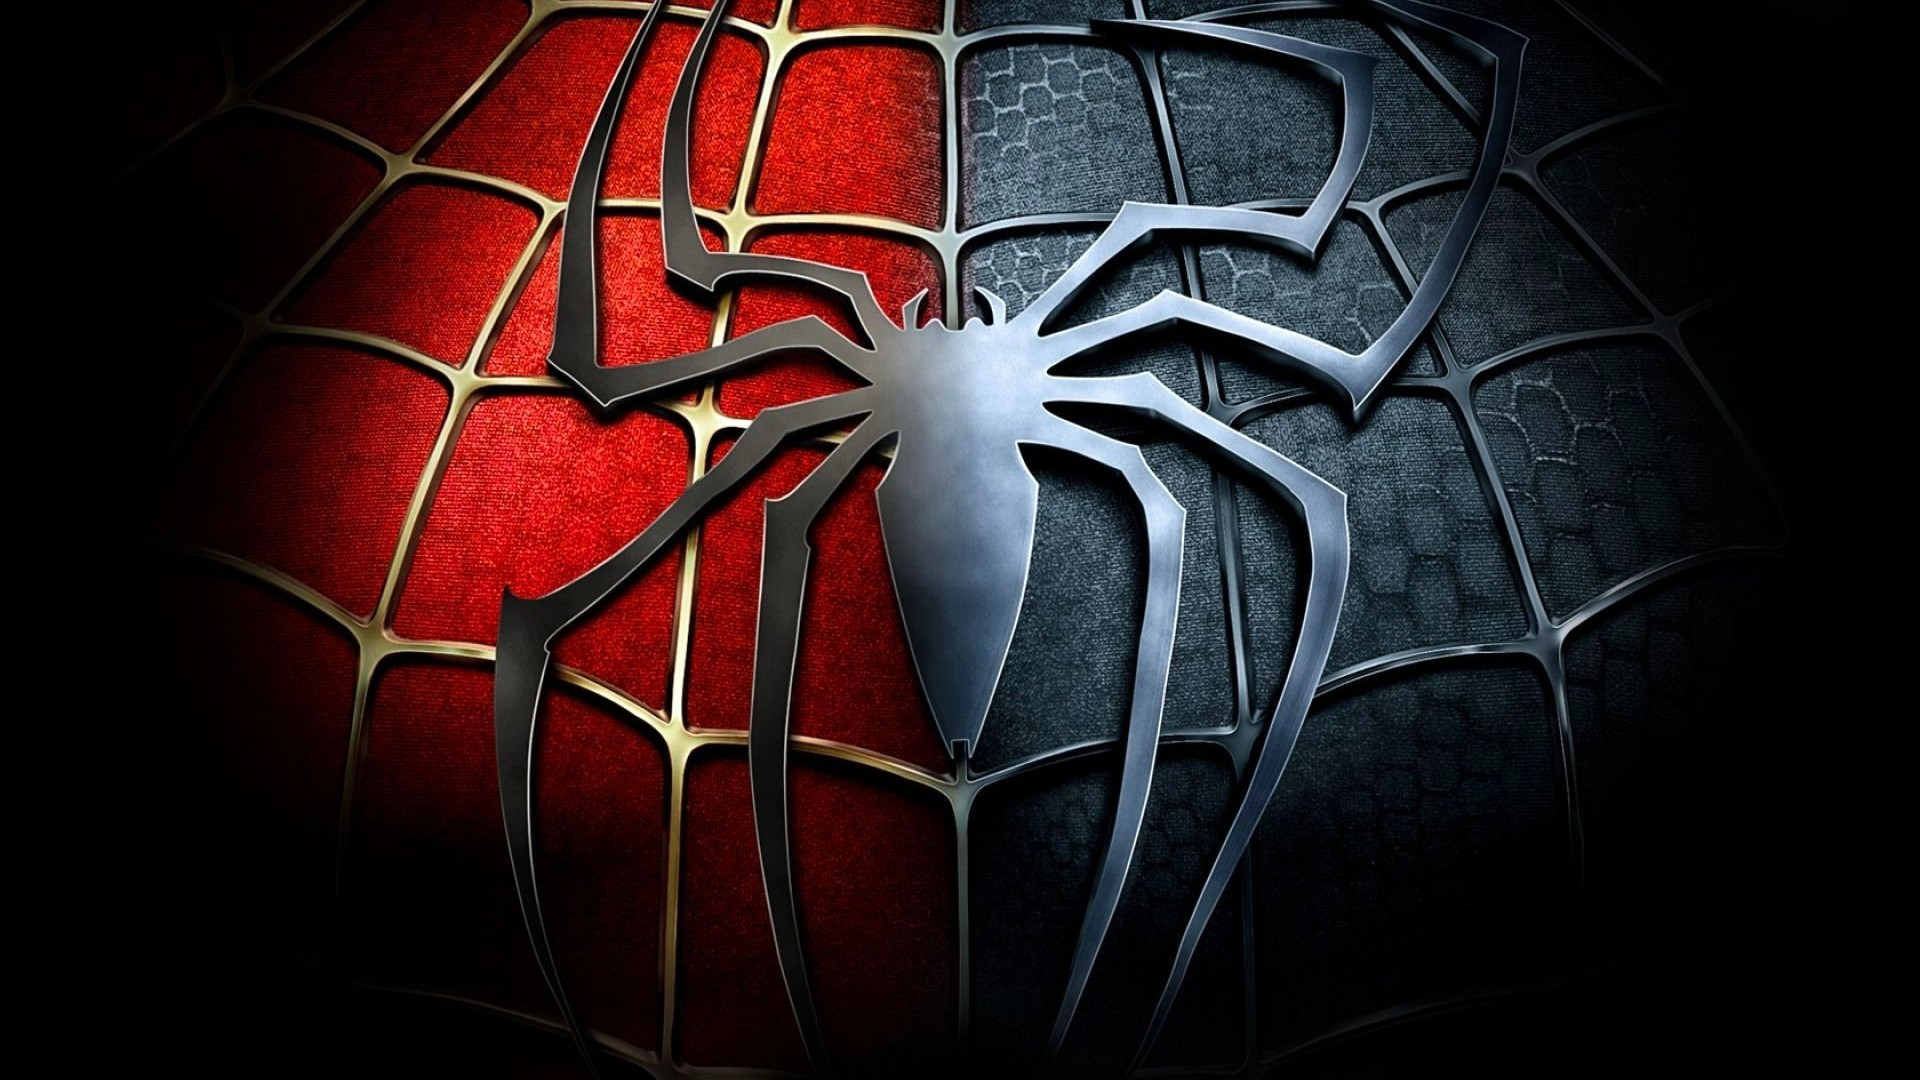 Amazing Spider Man 3d Live Wallpaper Free Download Acer Wallpaper 1080p Hd 1920x1080 64 Images